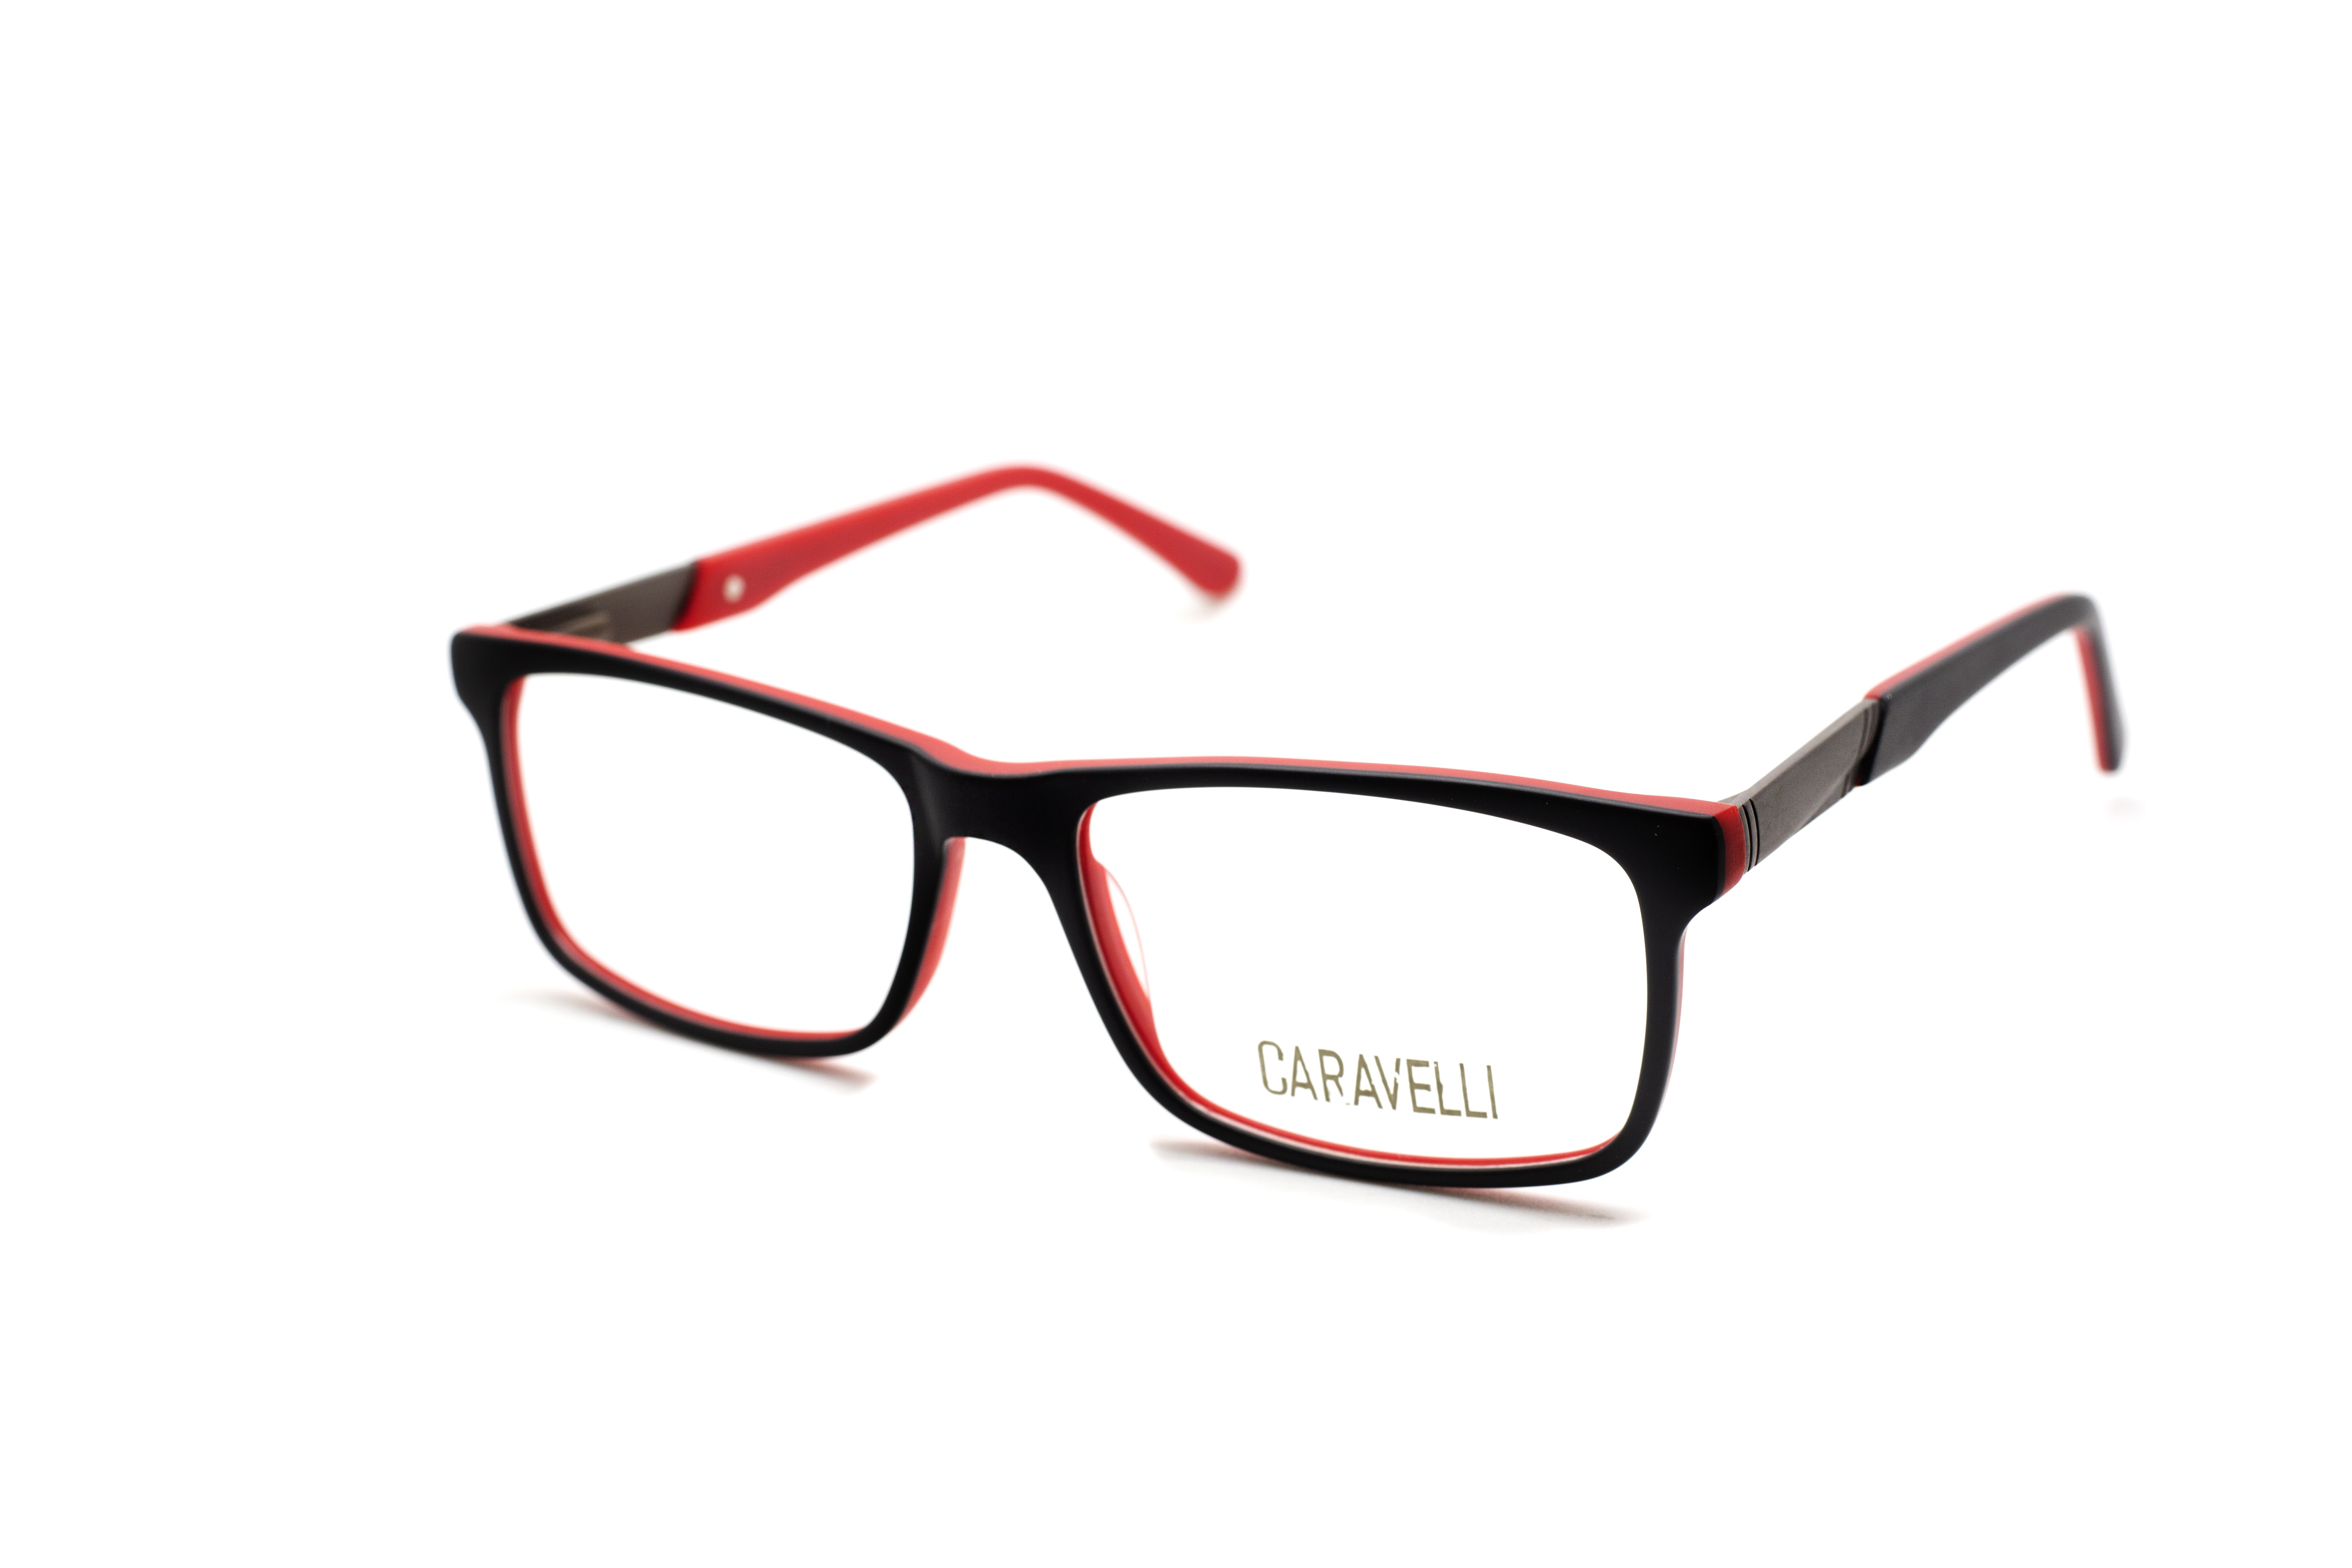 Caravelli 207 - Red (3 - Black/Red)